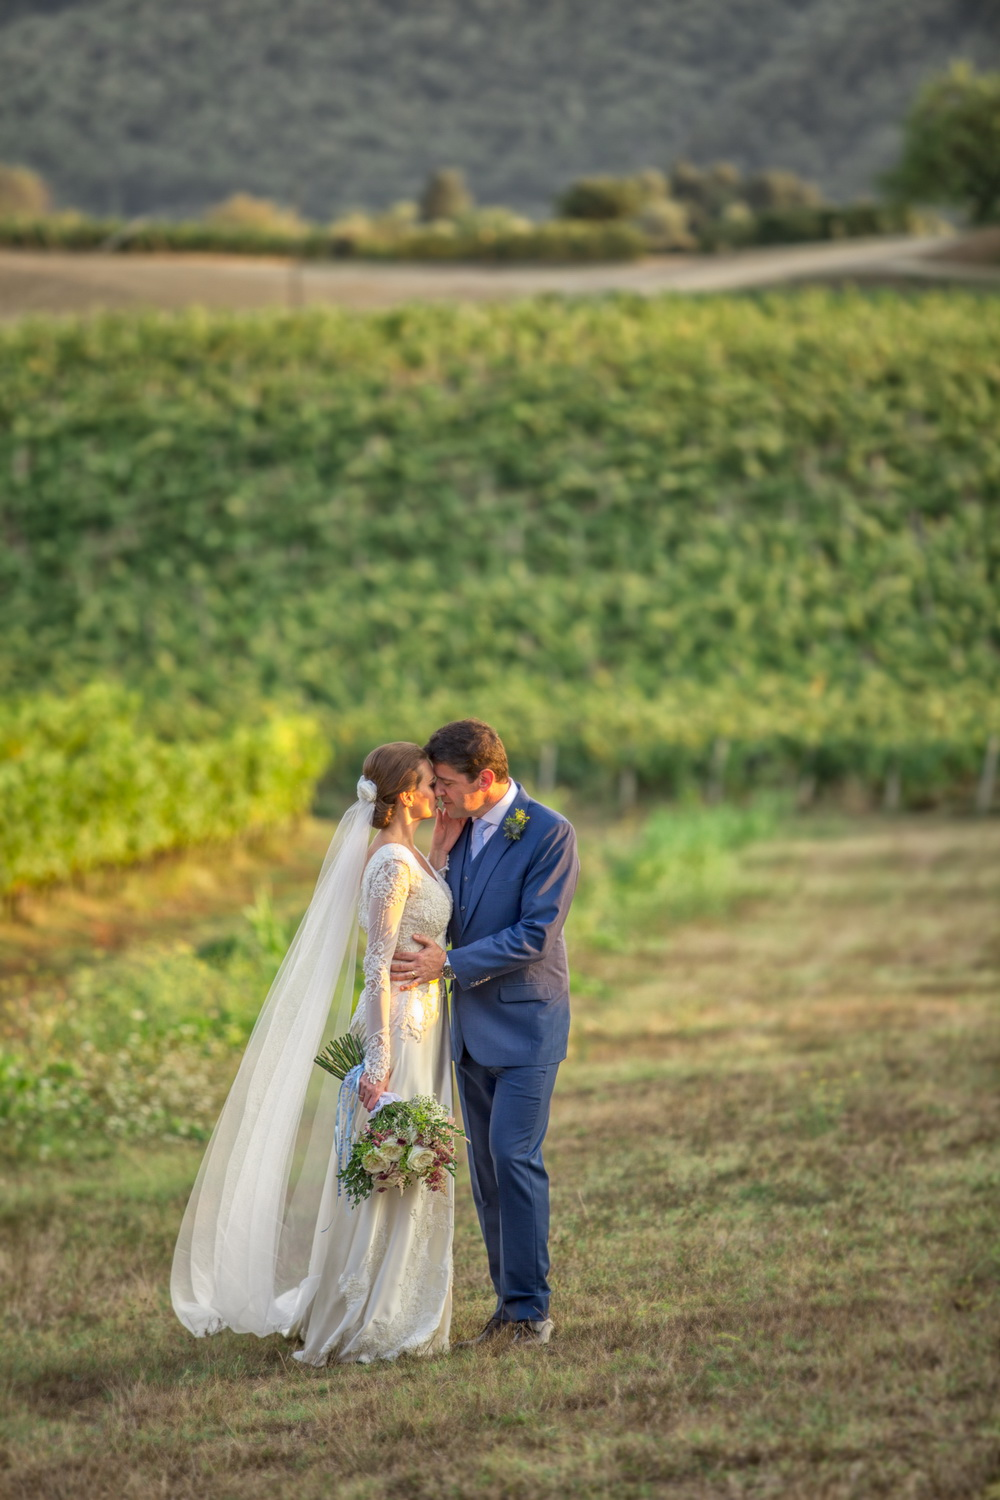 Destination Wedding Toscana | Caroline e Fernando destination wedding na toscana | caroline e fernando Destination Wedding na Toscana | Caroline e Fernando marco zammarchi destination wedding 46